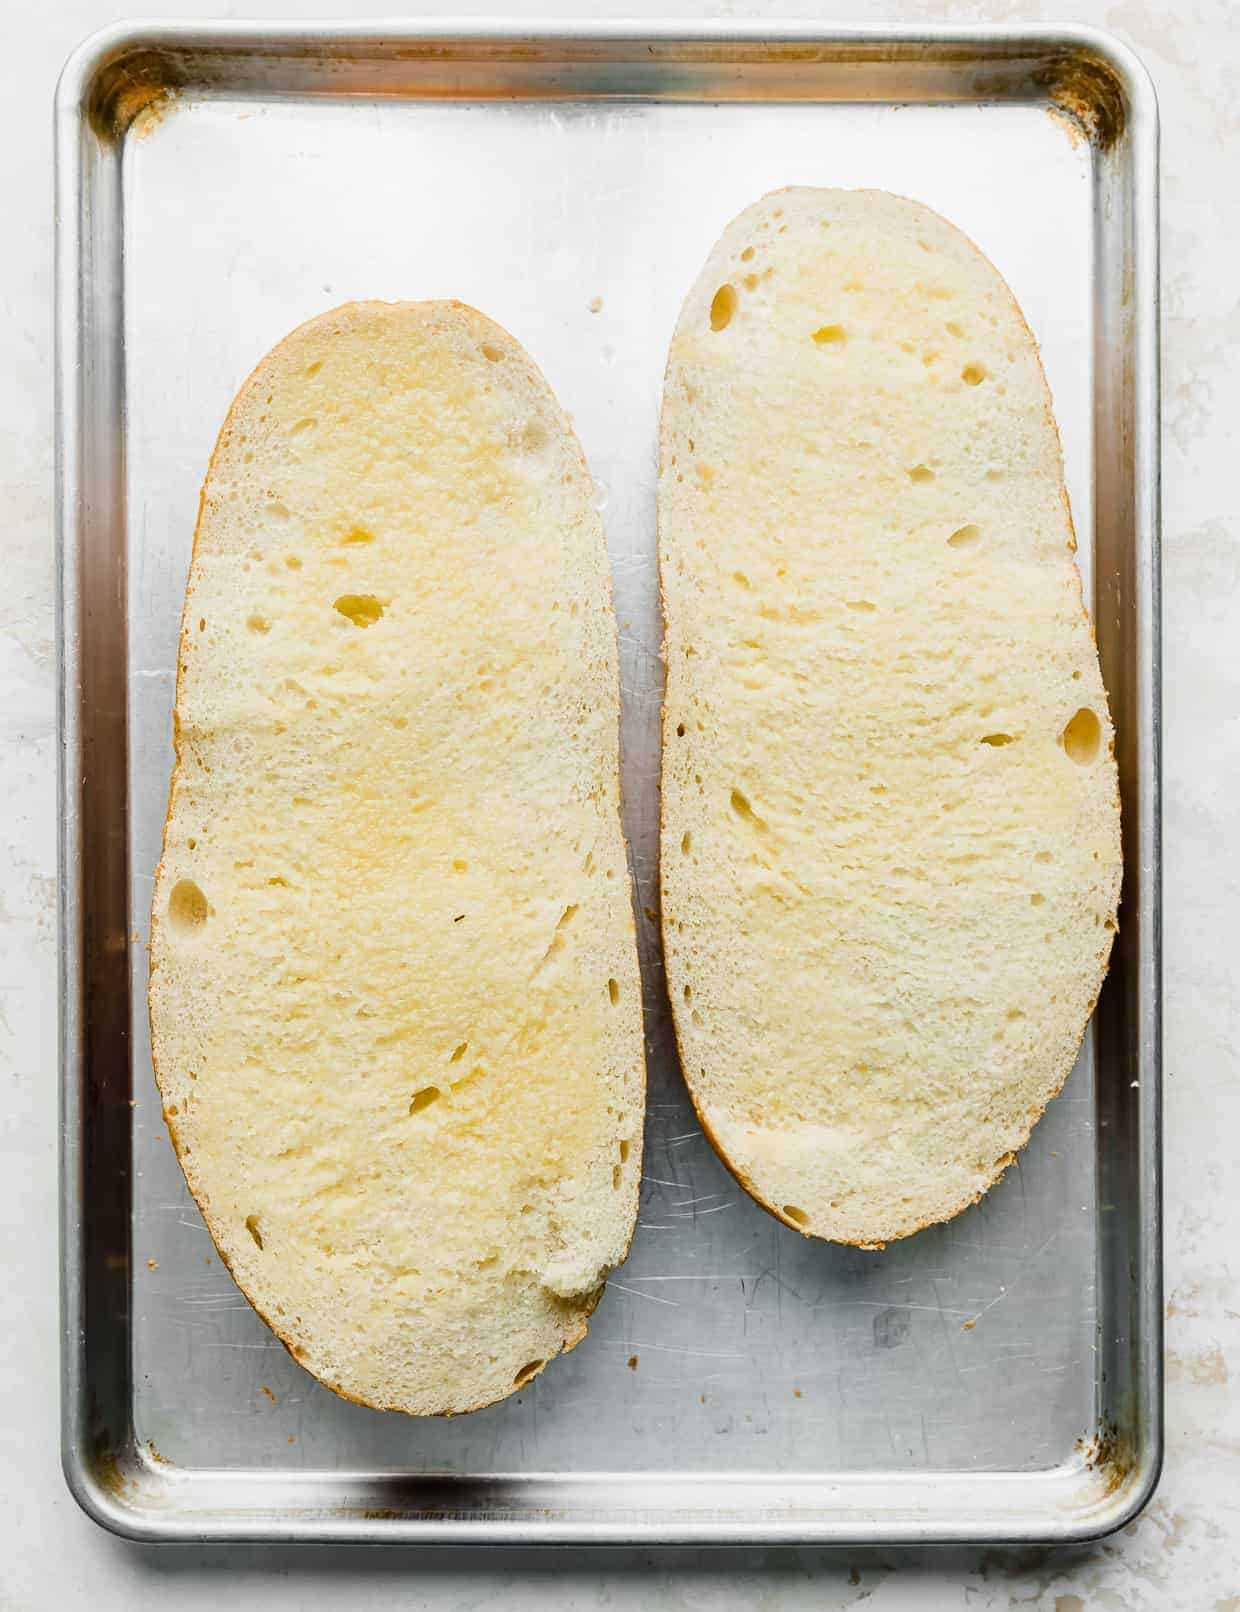 Two open faced slices of French bread on a baking sheet.